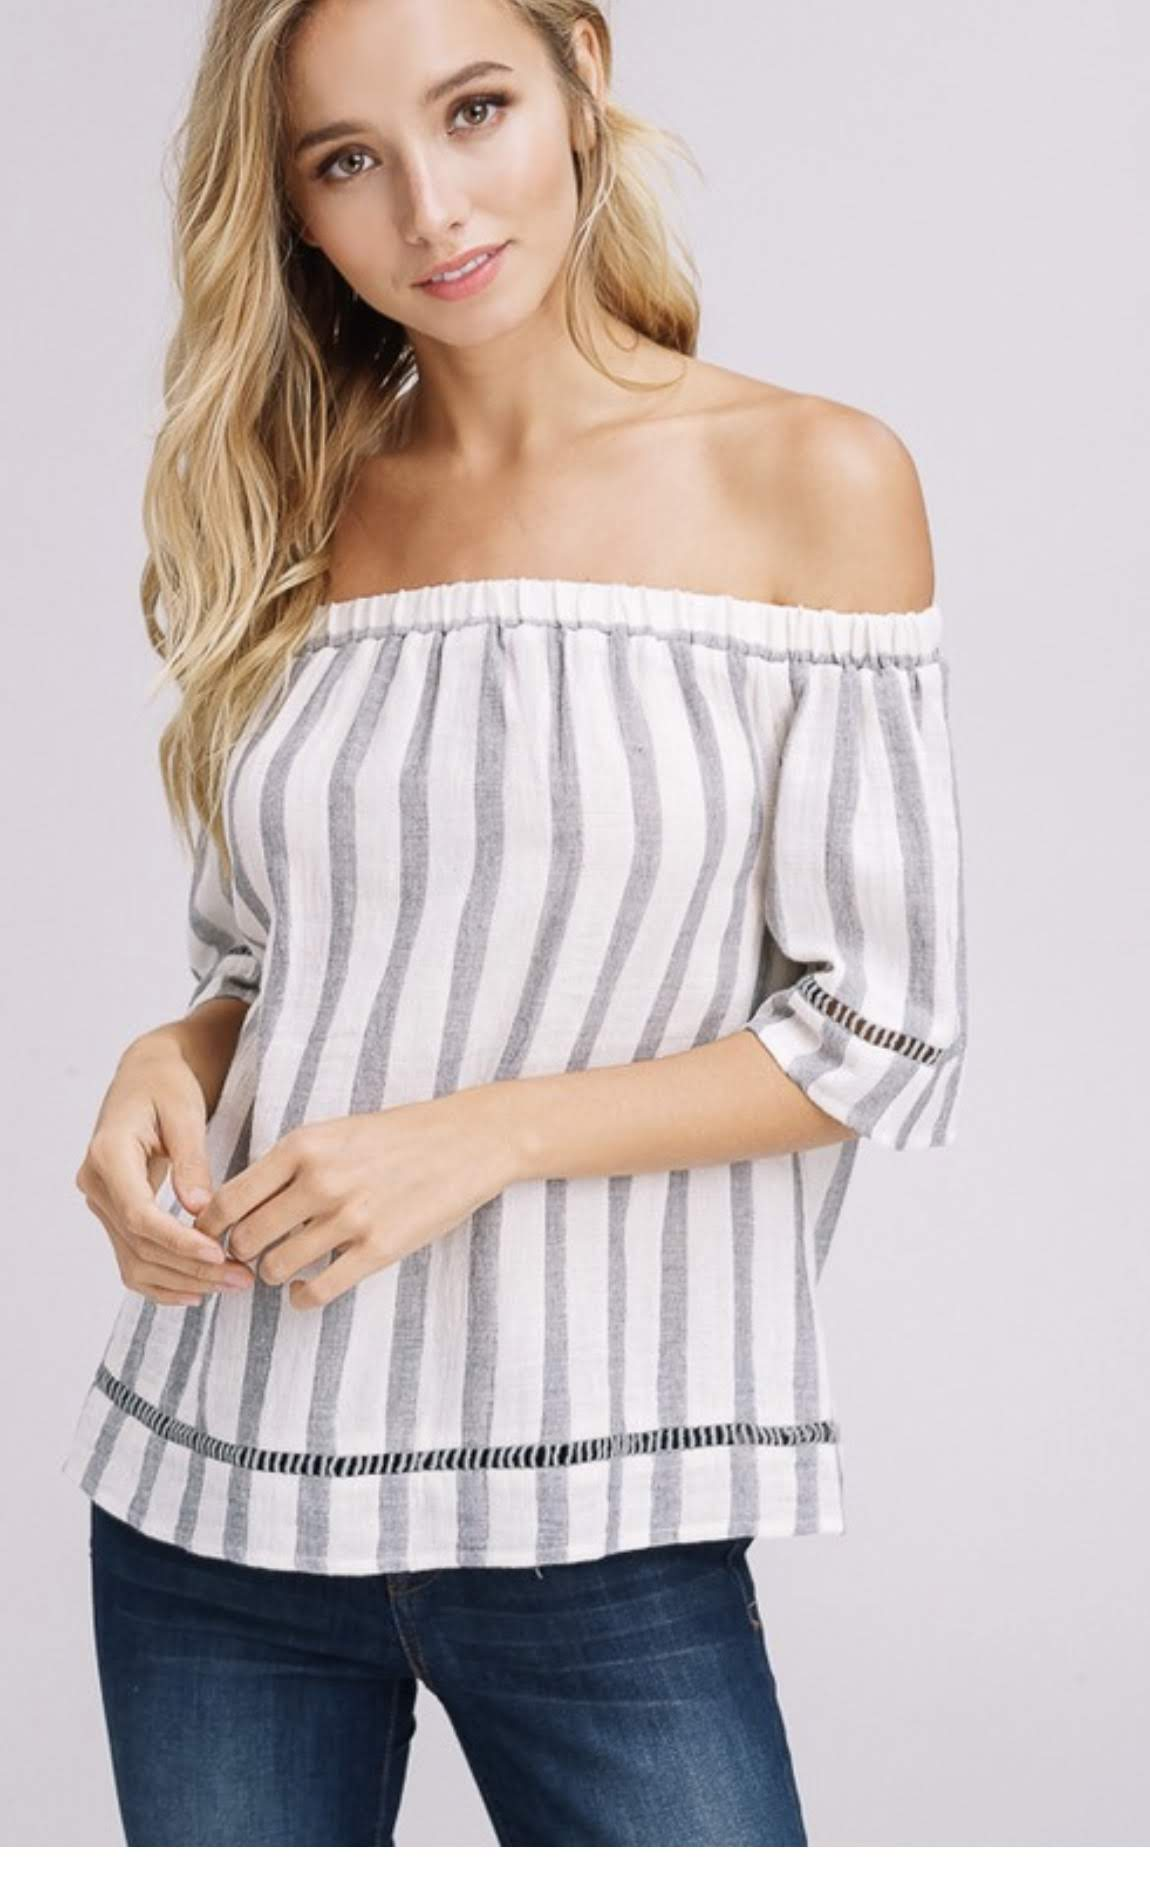 Off Shoulder White and Grey Vertical Striped Top